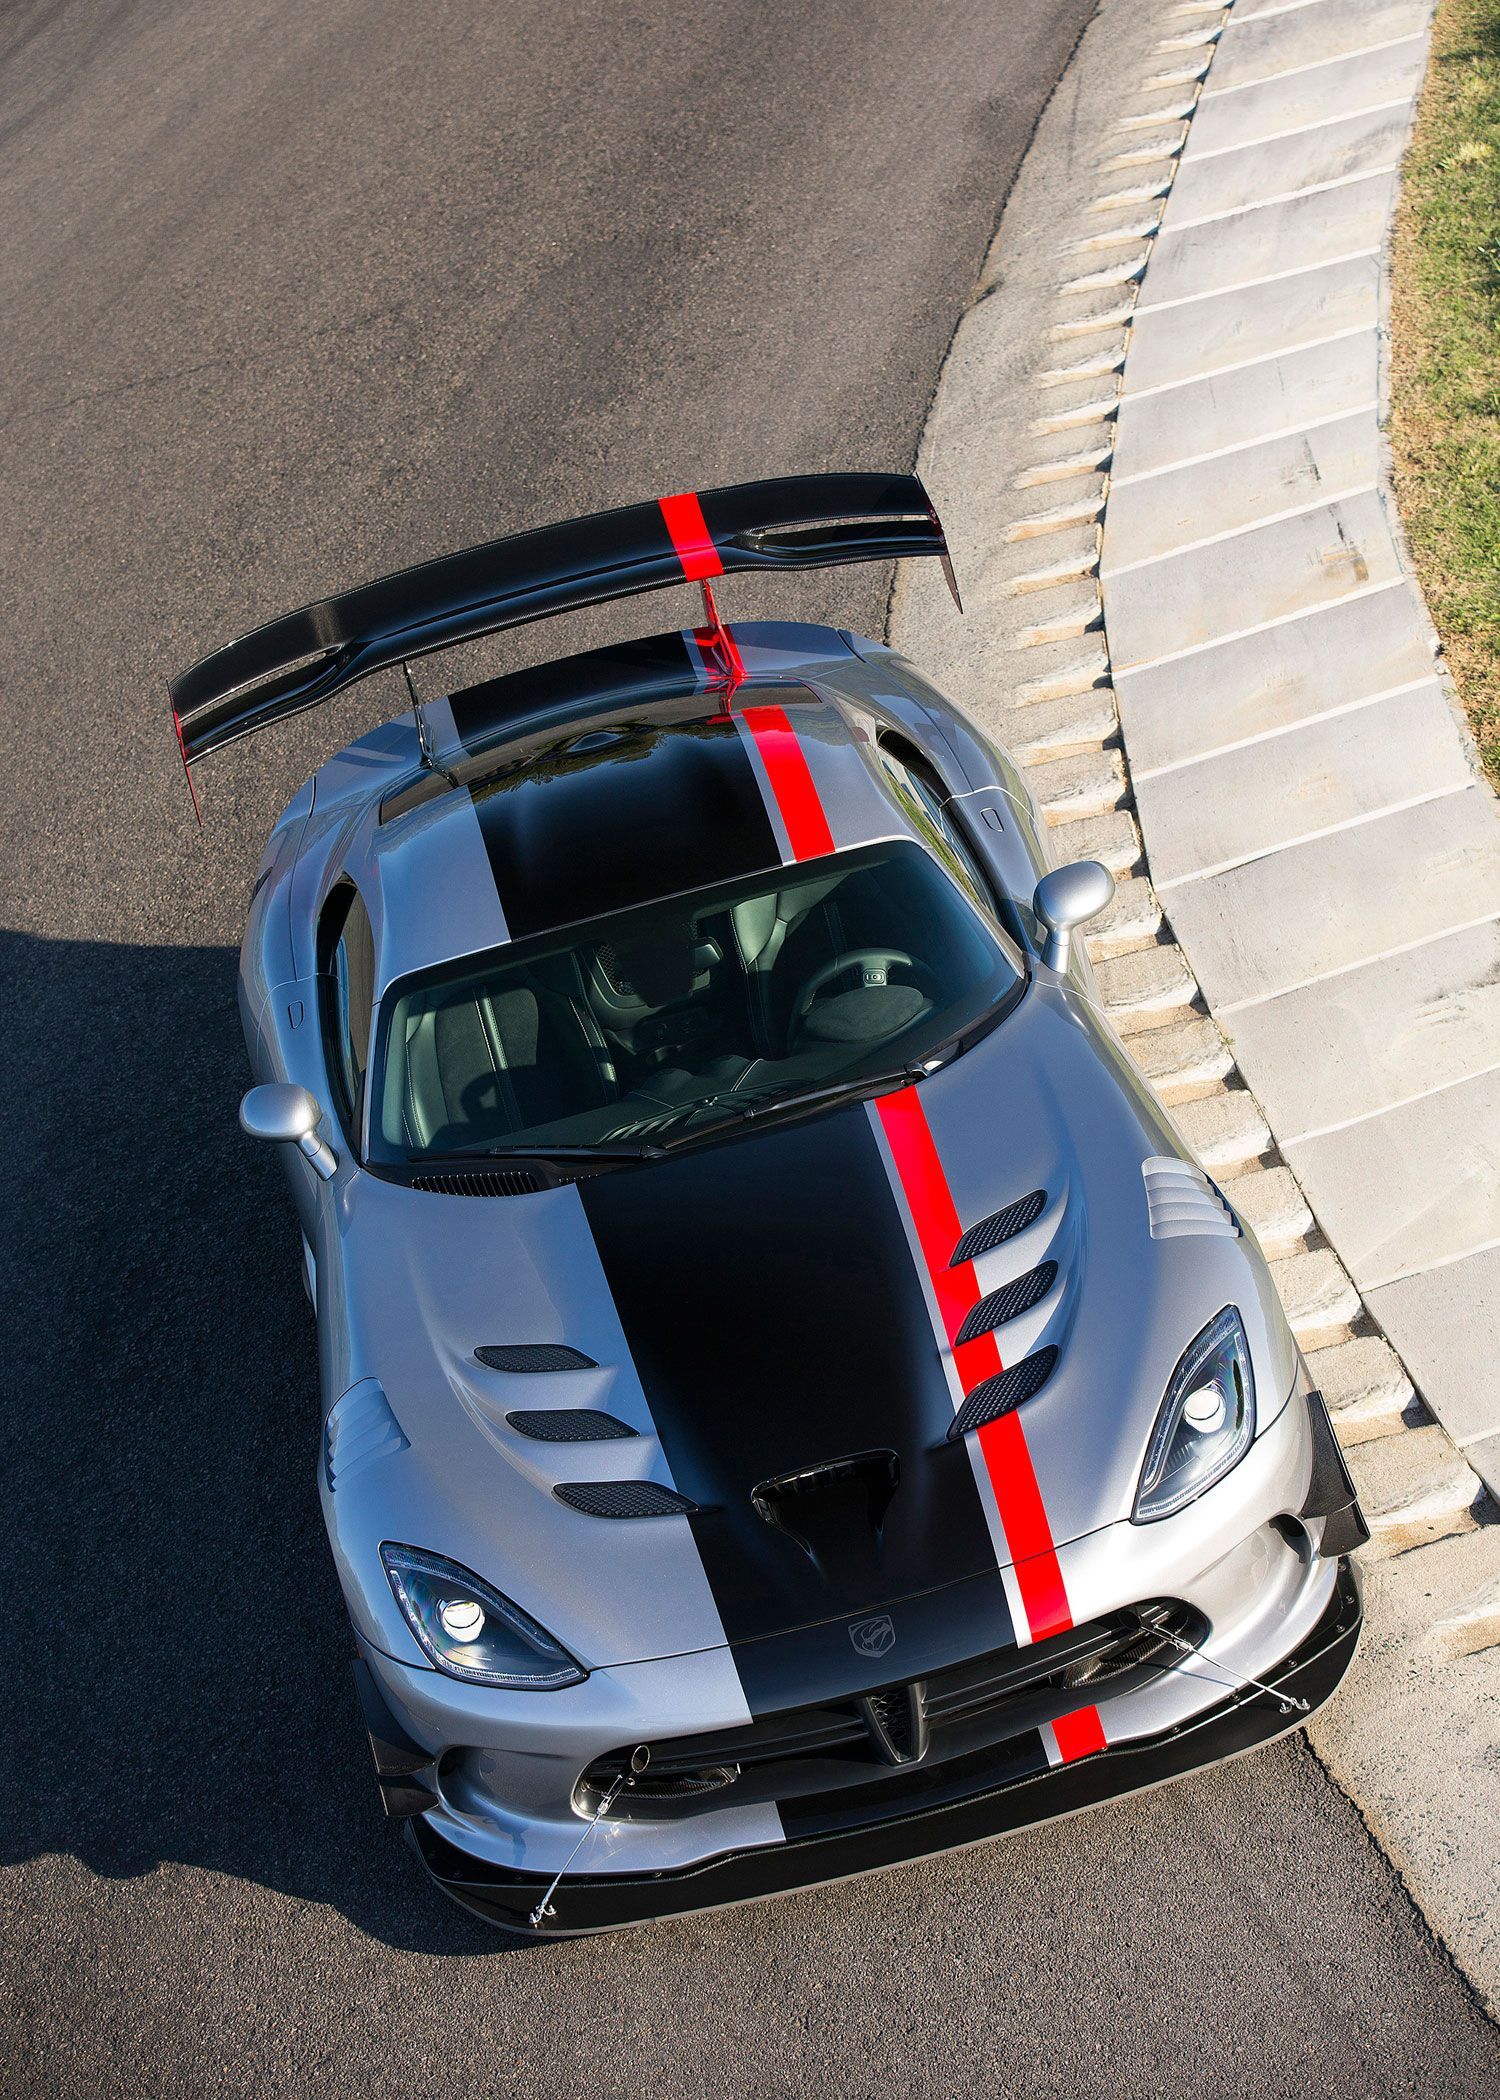 Dodge Viper Iphone Wallpapers Top Free Dodge Viper Iphone Backgrounds Wallpaperaccess